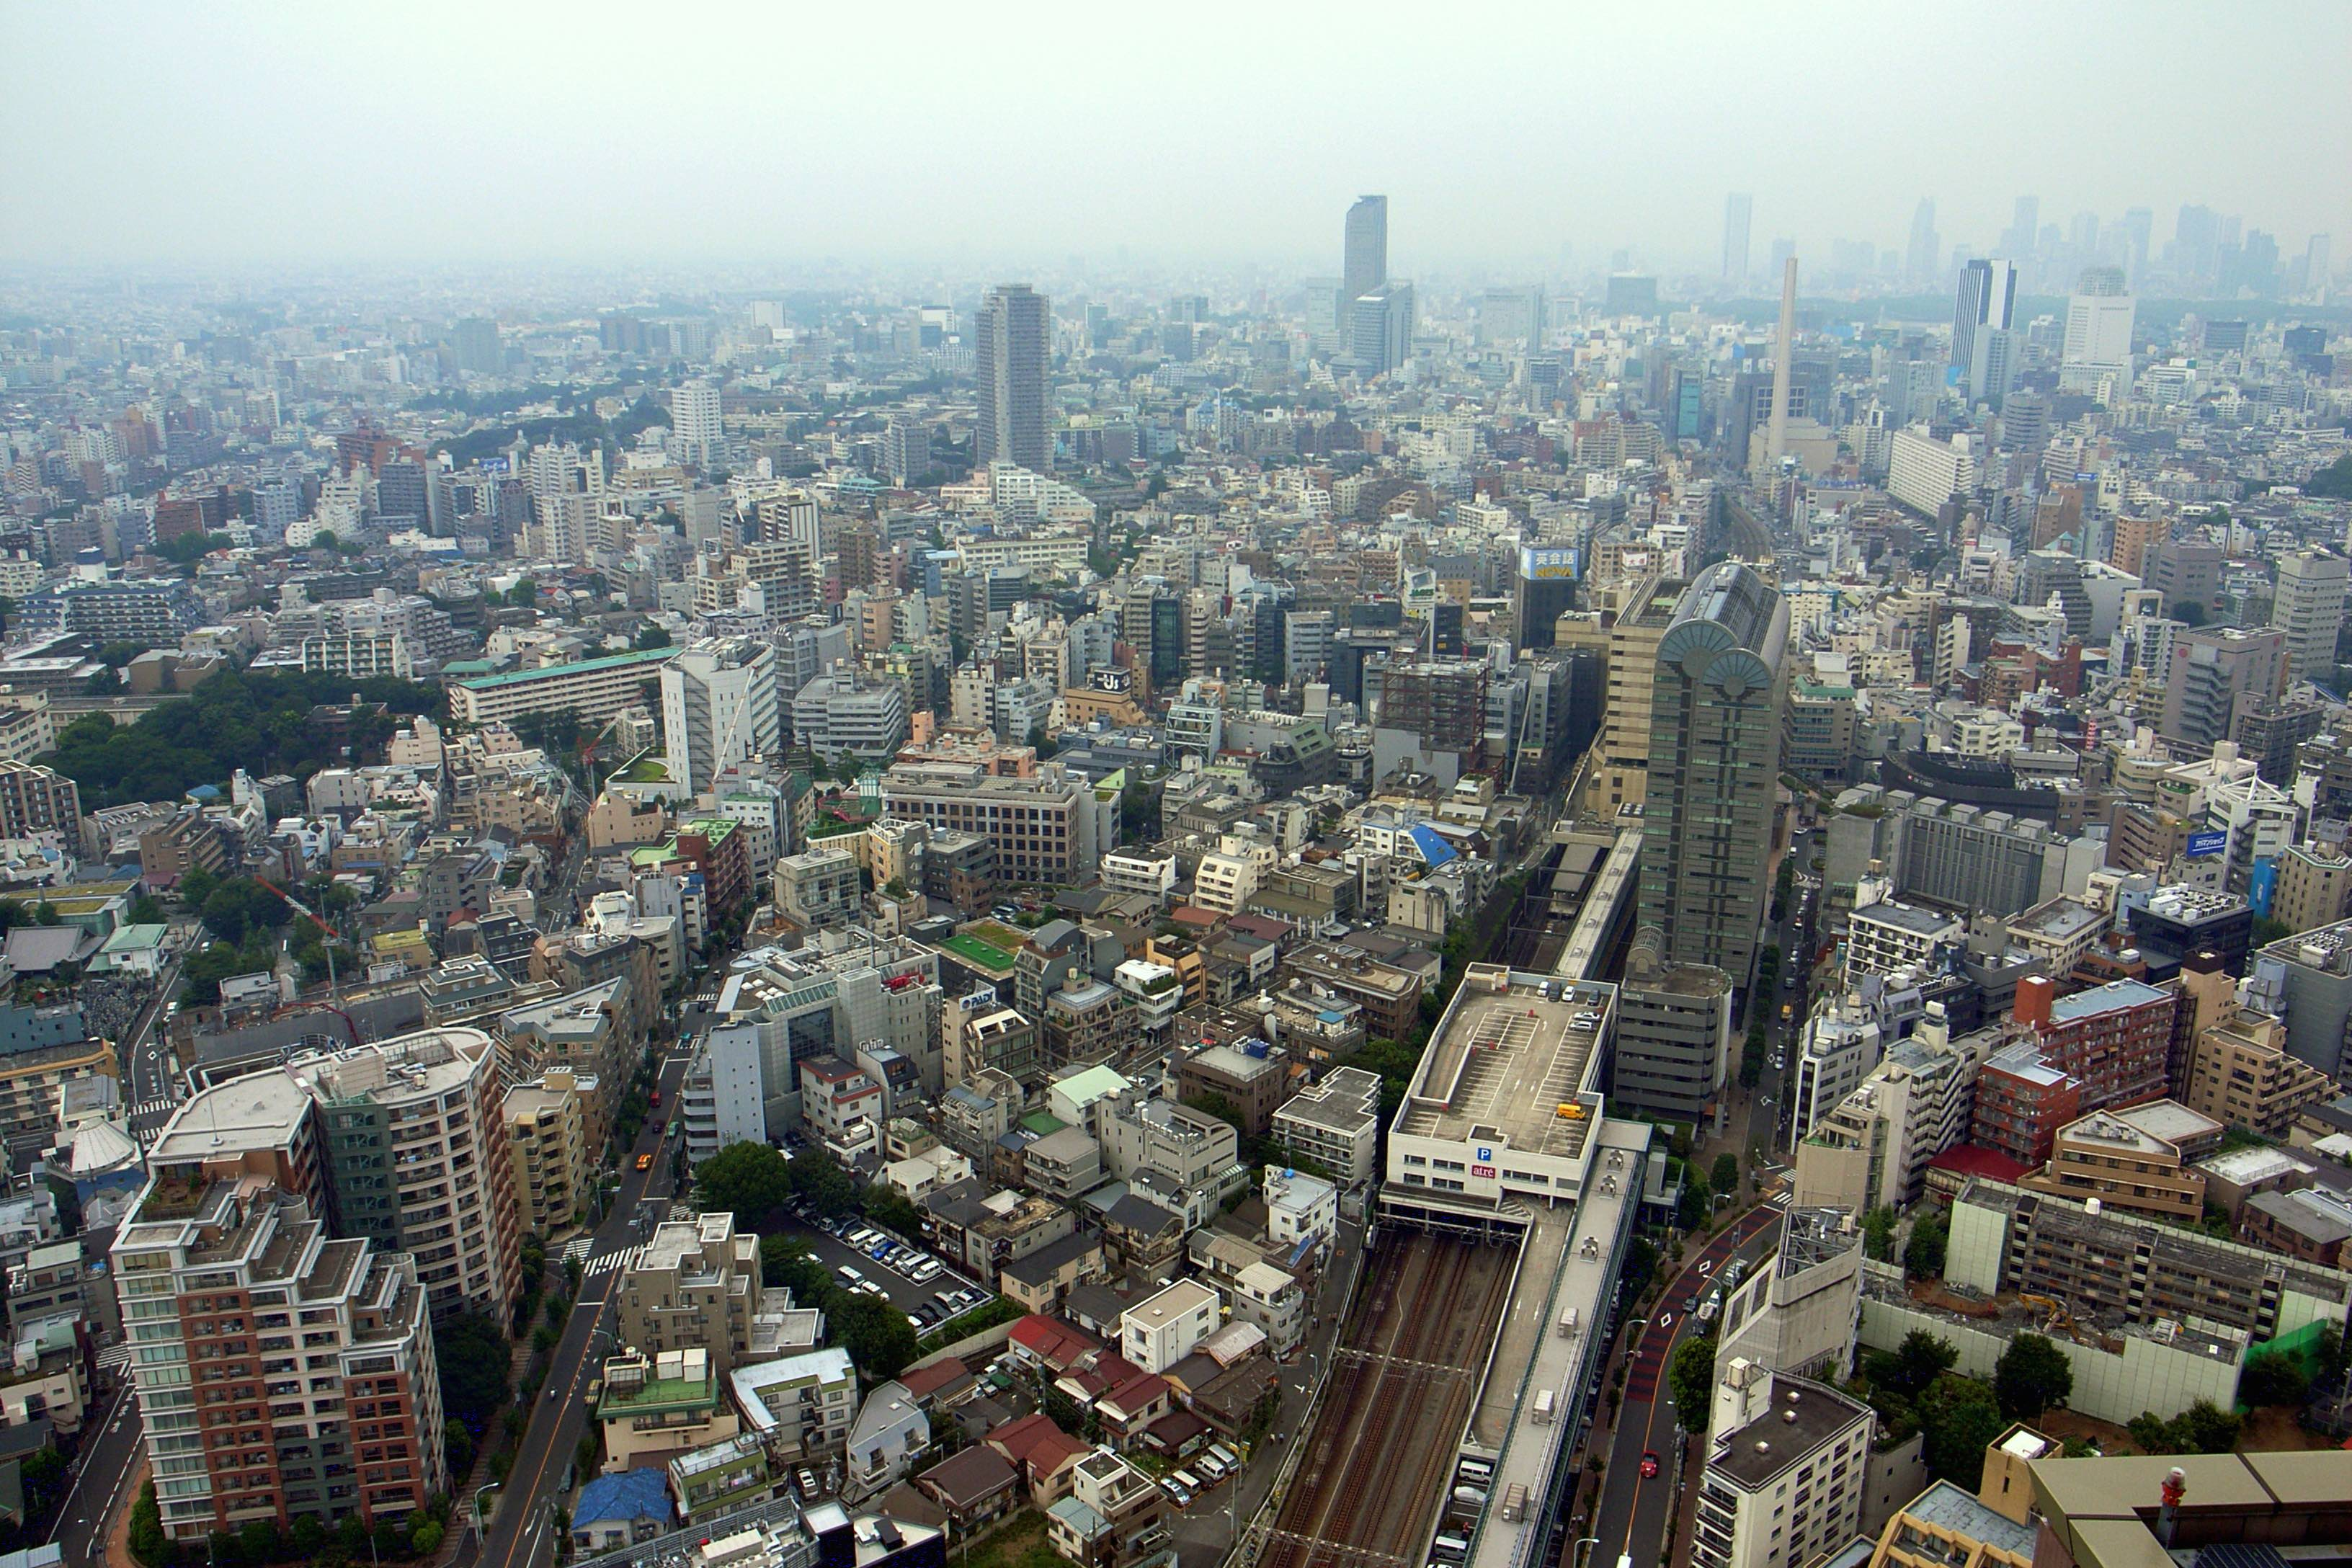 """Ebisu ward in Tokyo, a hot-bed of Japanese- and foreign-led startups, is part of the city's """"crypto alley"""" cluster of blockchain companies."""